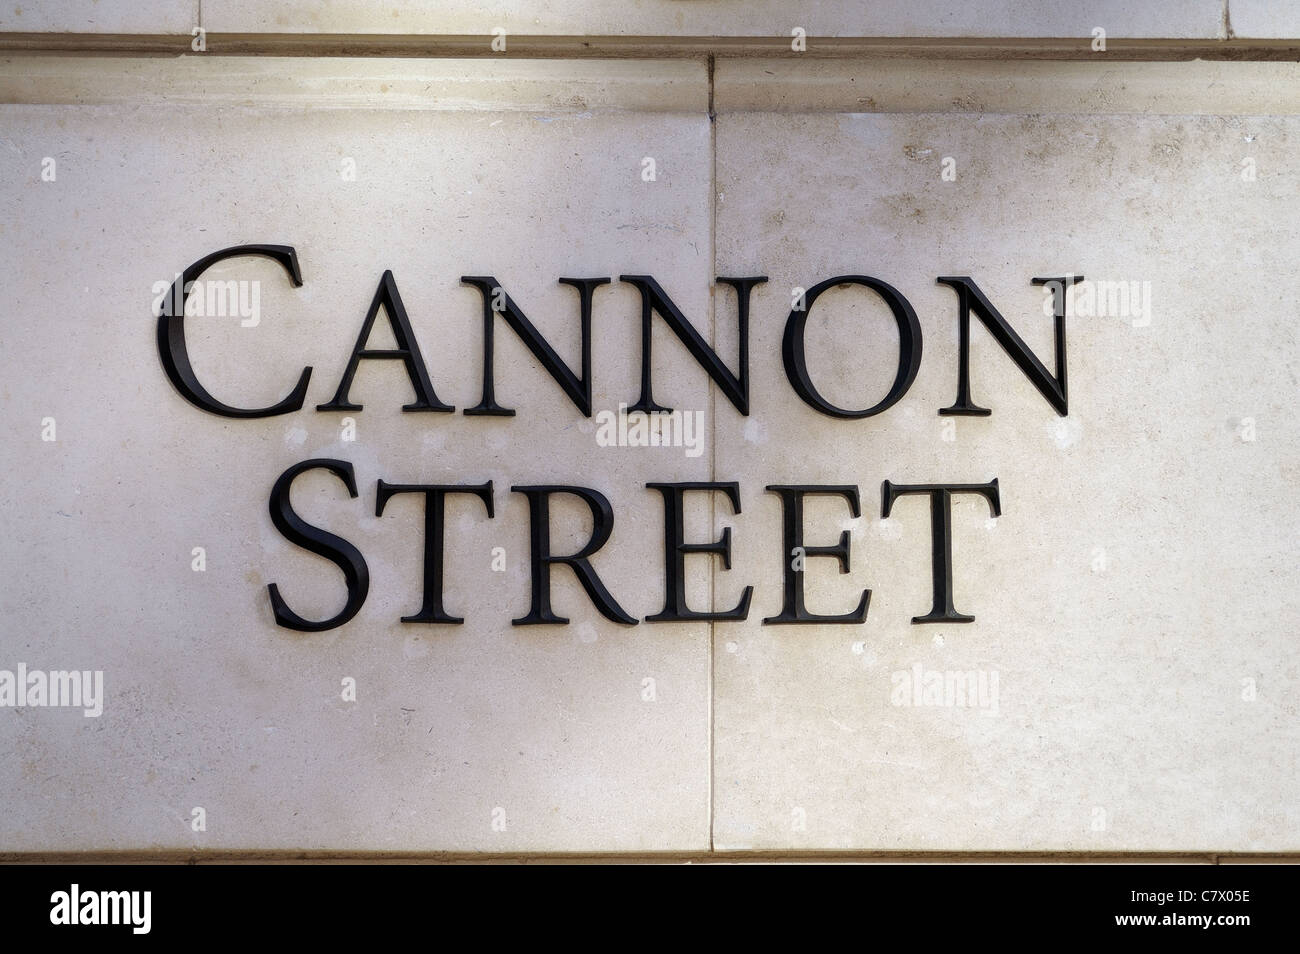 Cannon st Street sign London - Stock Image